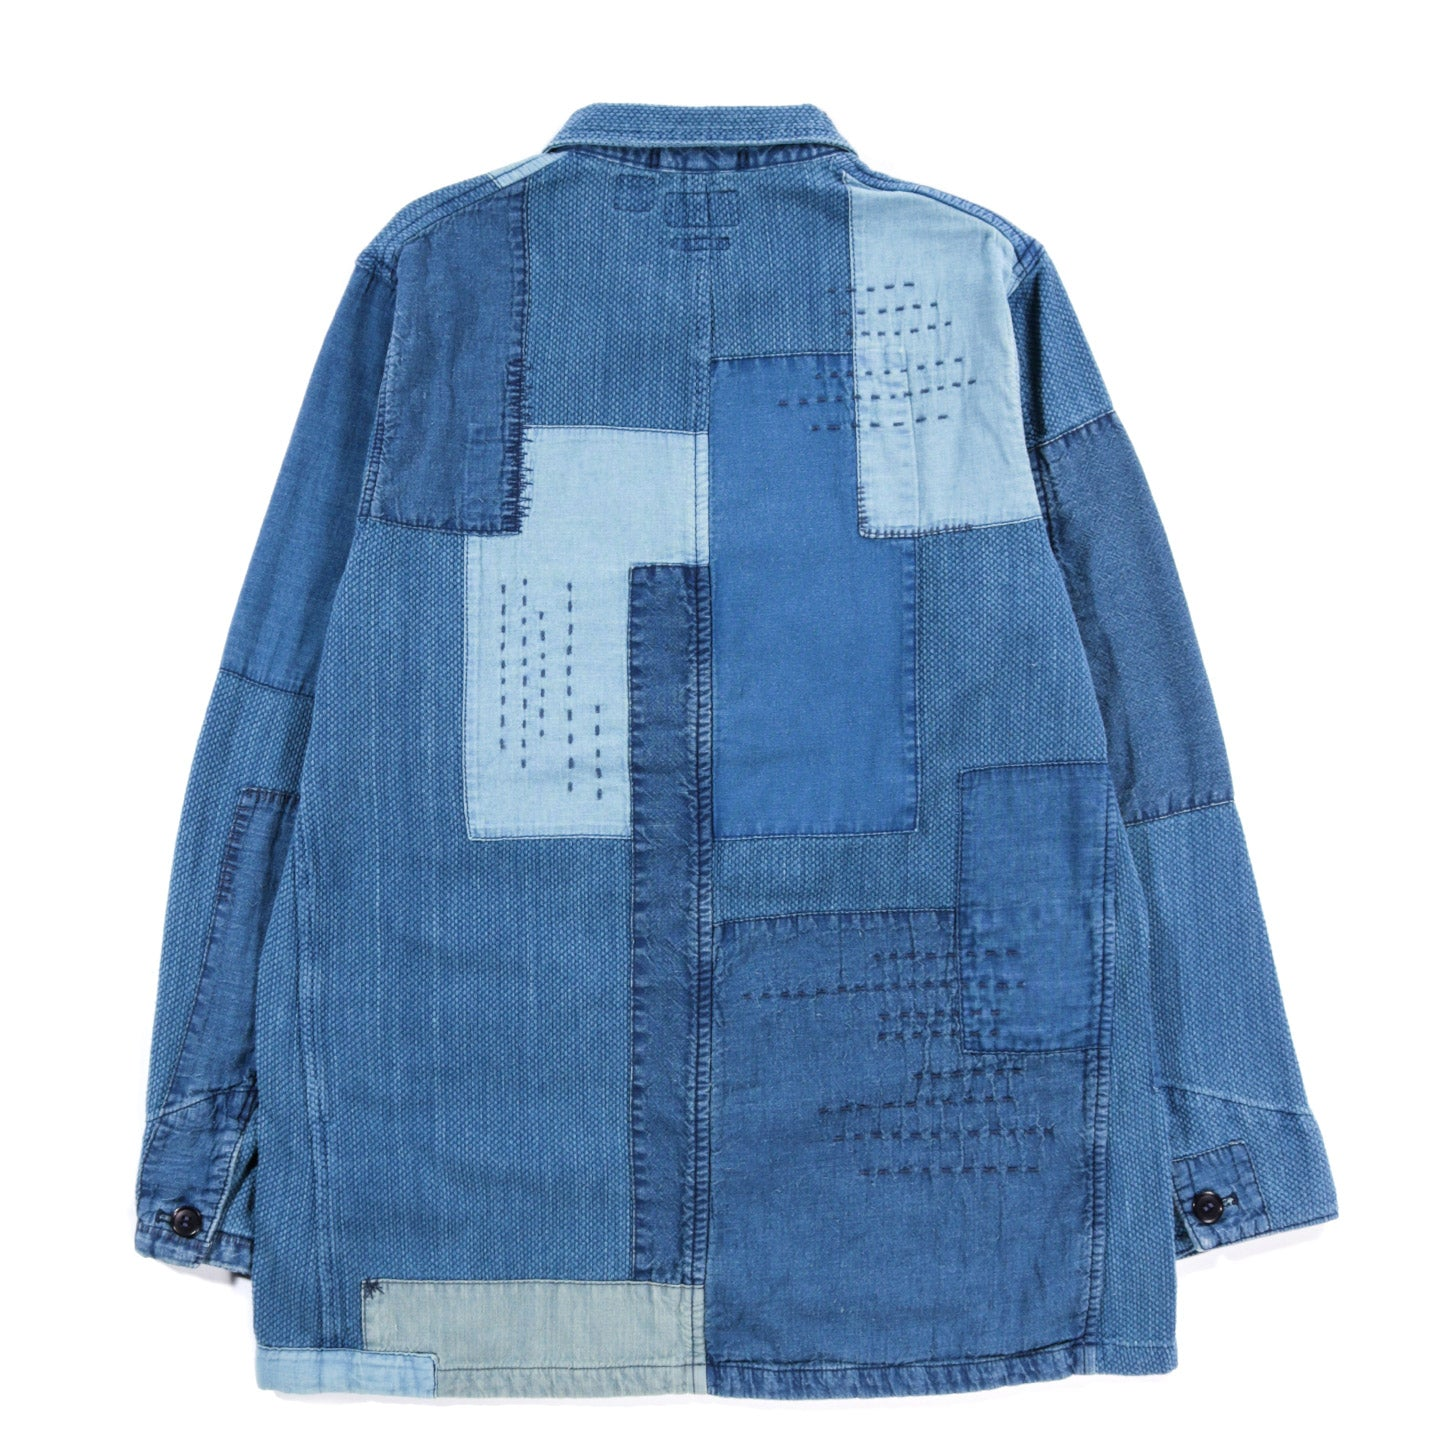 BLUE BLUE JAPAN SASHIKO 2-BUTTON JACKET INDIGO